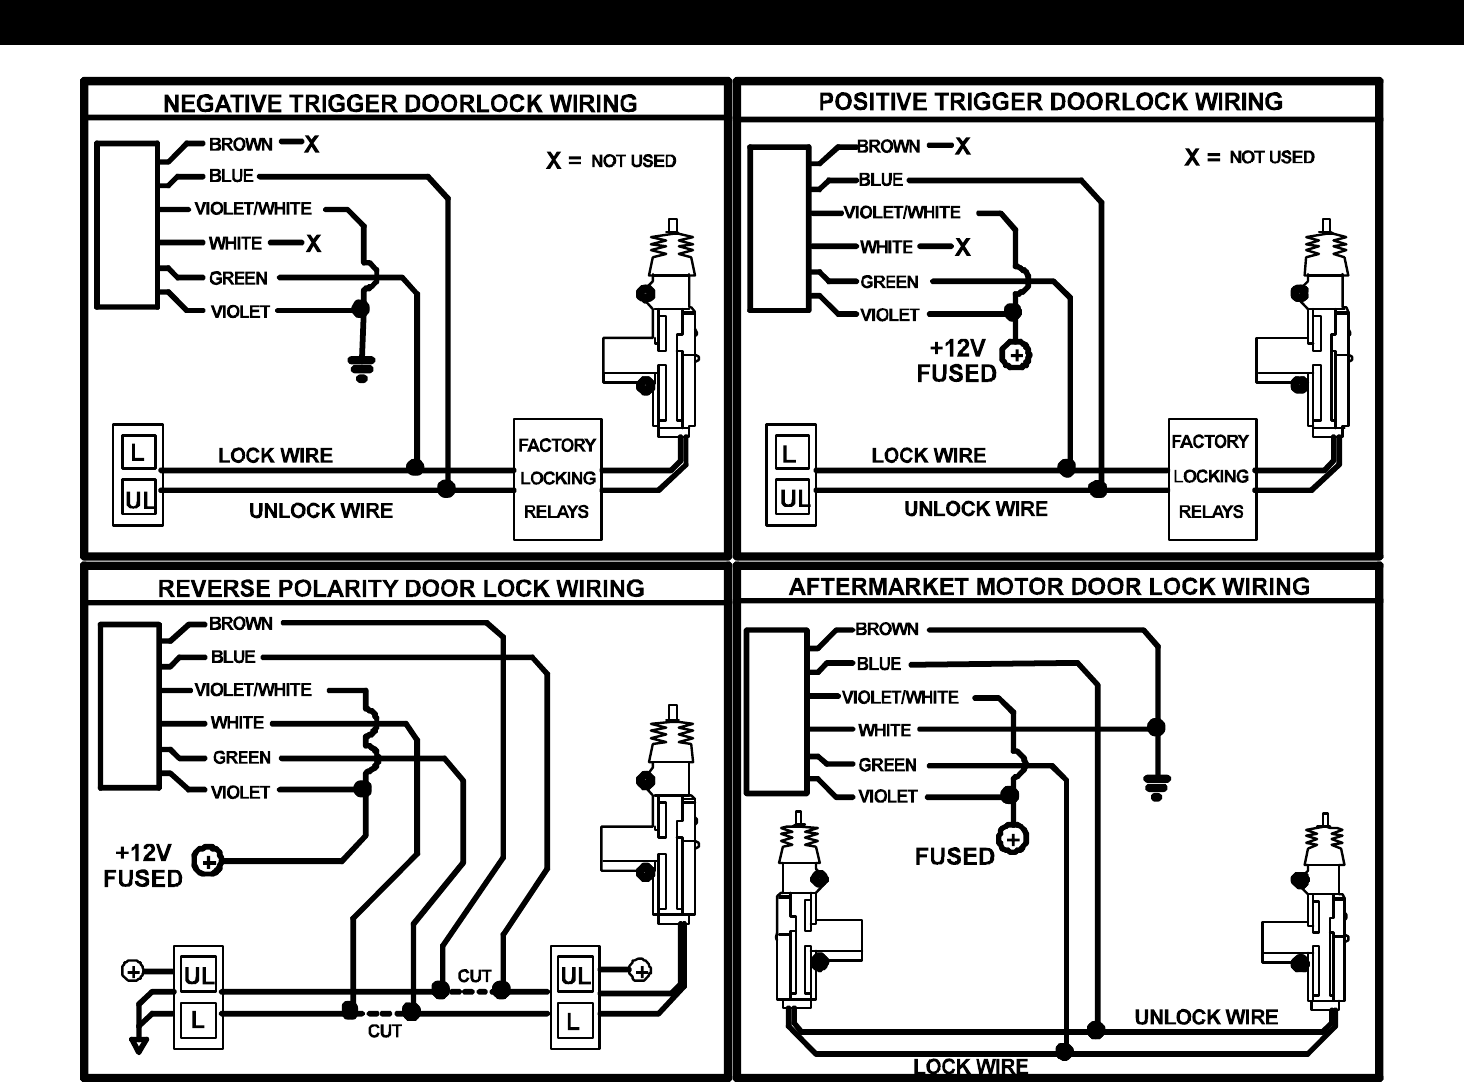 a8413788 0d4b 4ba0 848e 782364050129 bg6 page 6 of crimestopper security products automobile alarm cs 2205 crimestopper rs4-g5 wiring diagram at et-consult.org